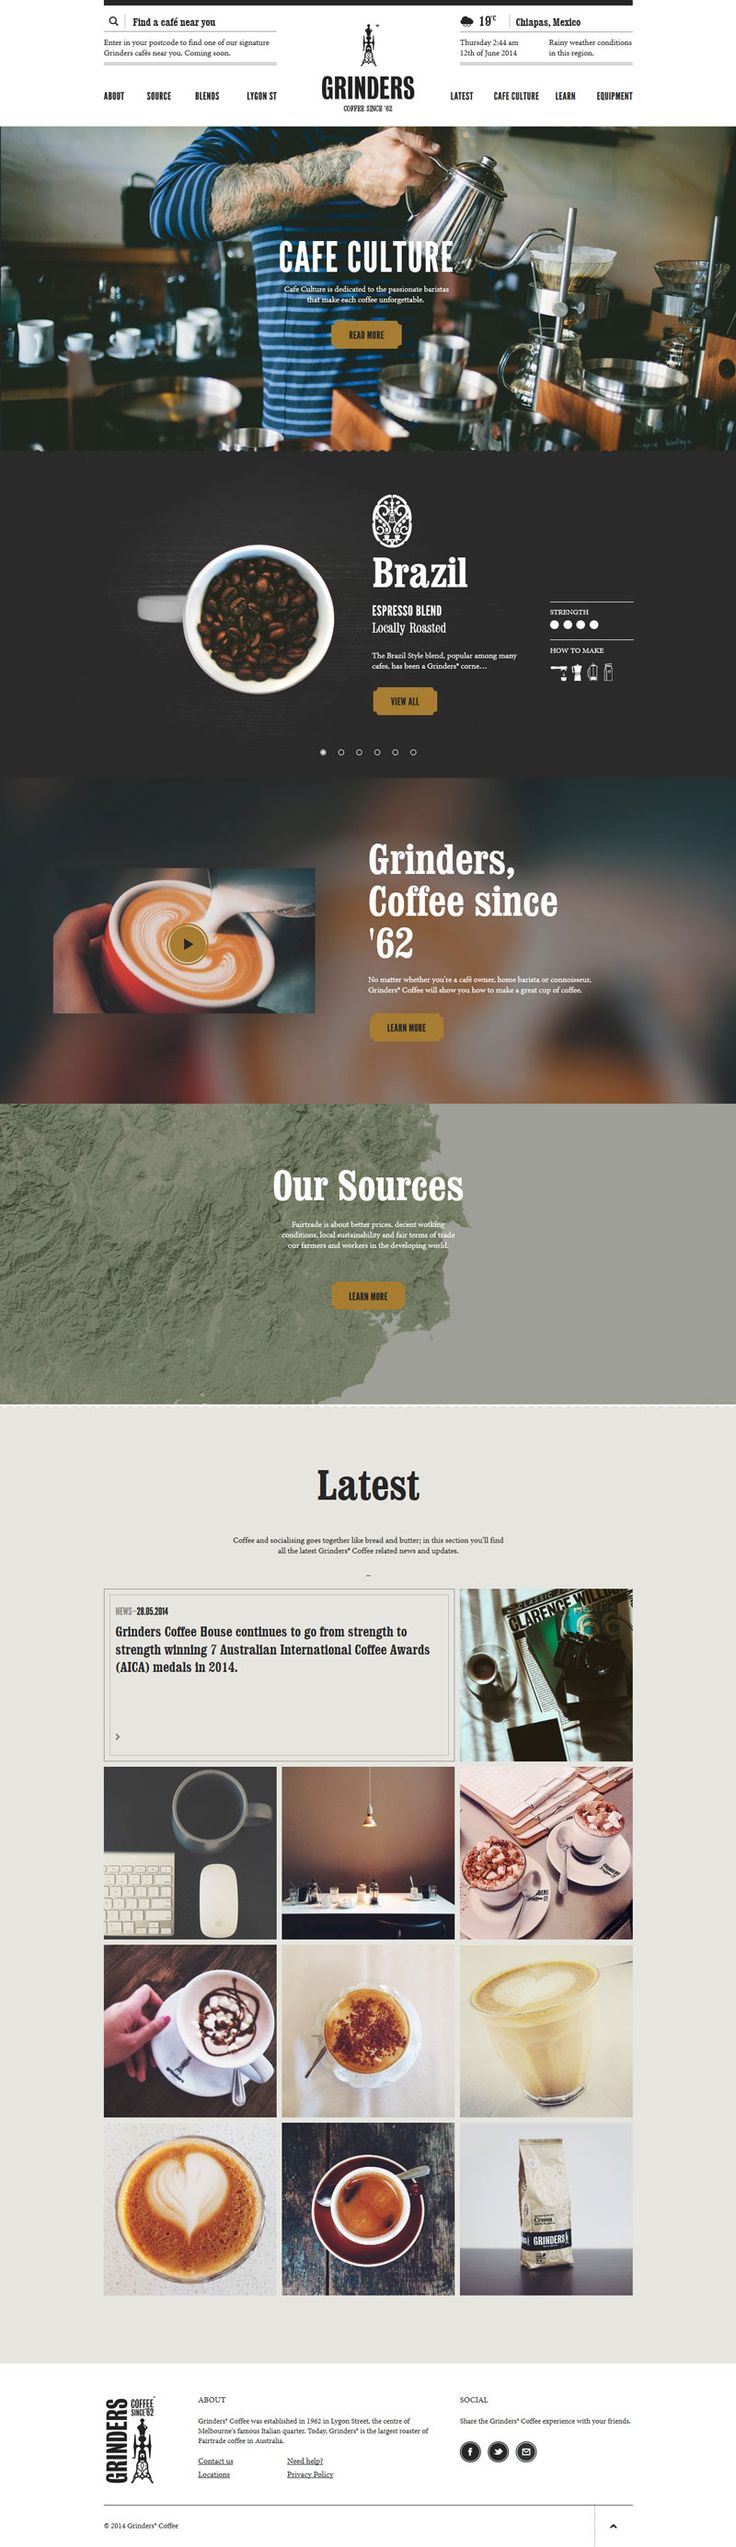 Grinders Coffee House, modern vintage design website, example